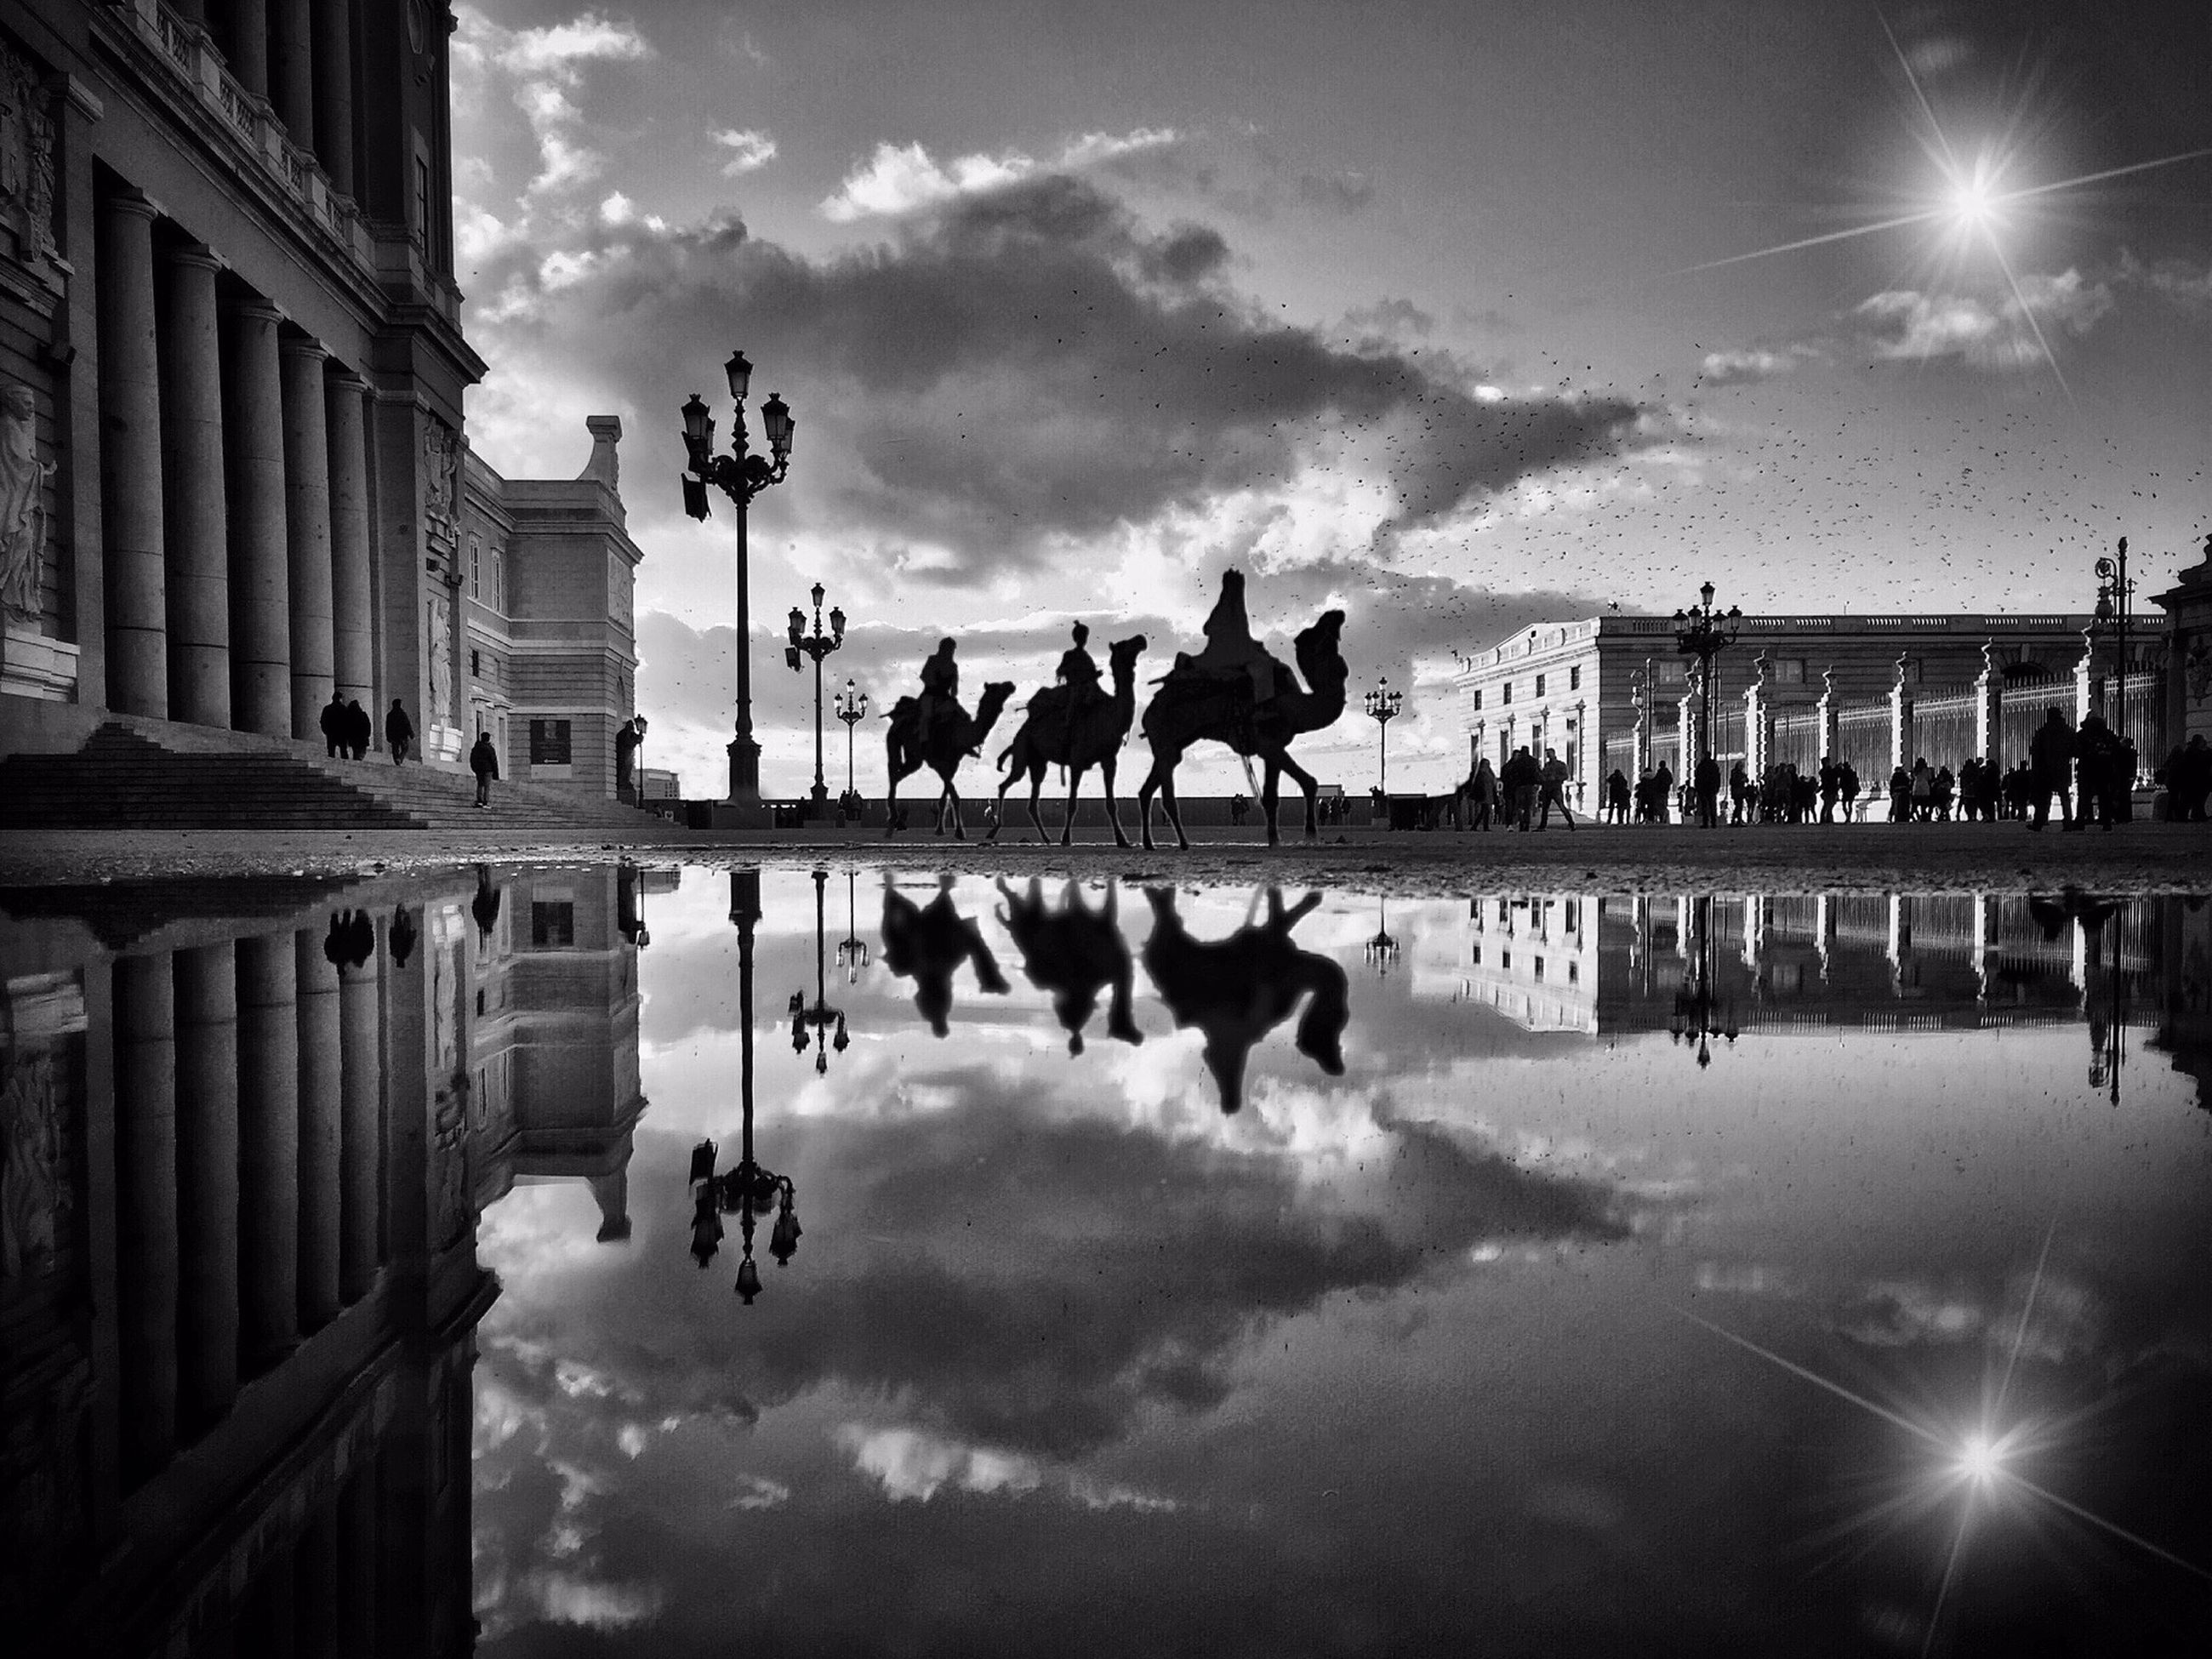 sky, architecture, built structure, cloud - sky, building exterior, silhouette, large group of people, men, lifestyles, cloud, reflection, person, leisure activity, water, cloudy, dusk, medium group of people, walking, mixed age range